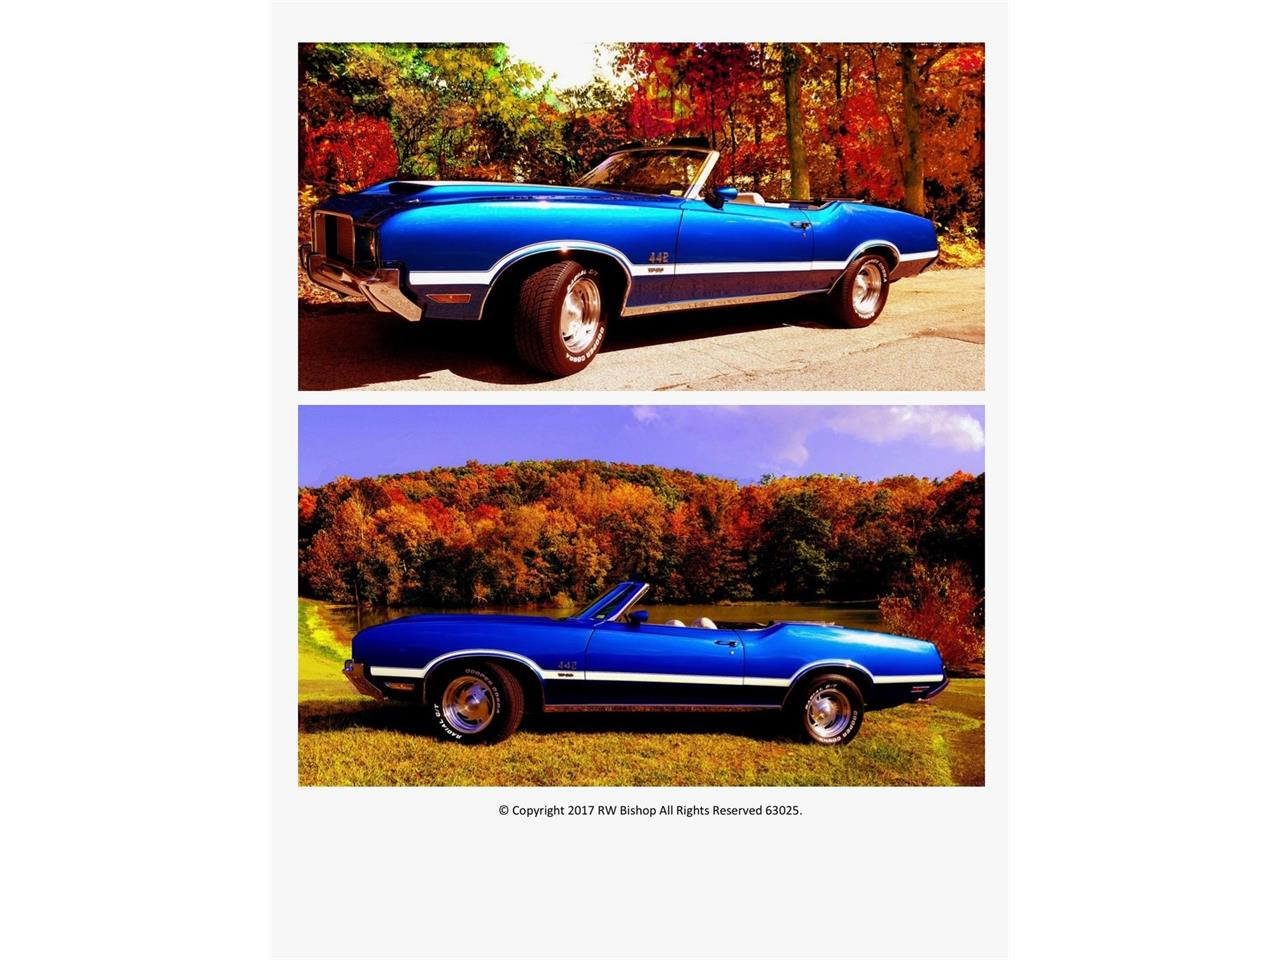 Large Picture of Classic 1972 Cutlass 422 located in Missouri - $75,550.00 - NO0D